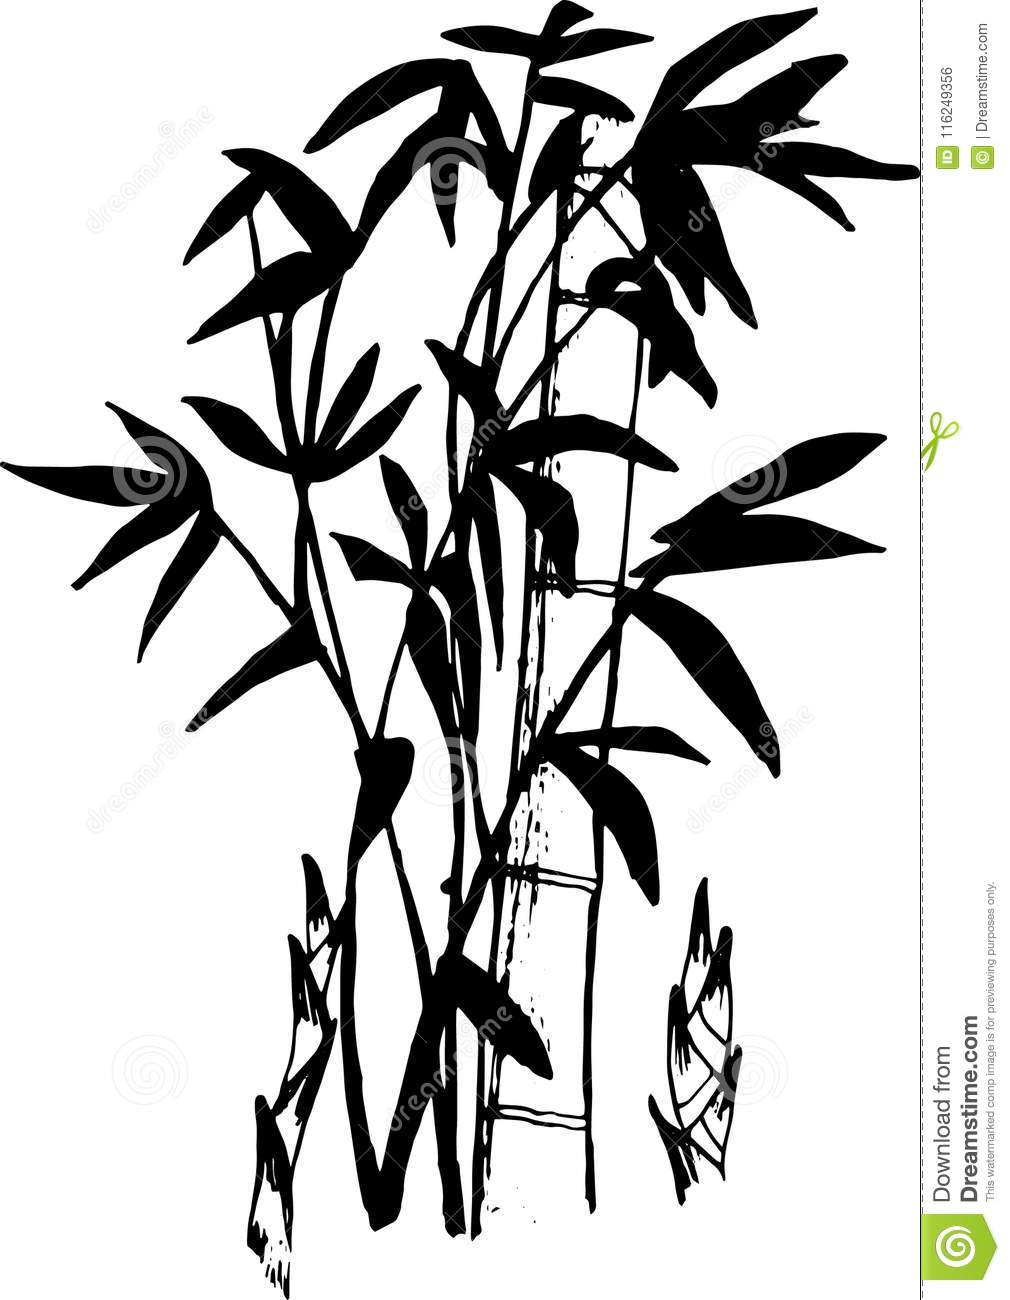 Black And White Illustration Of A Bamboo Tattoo Stock Vector